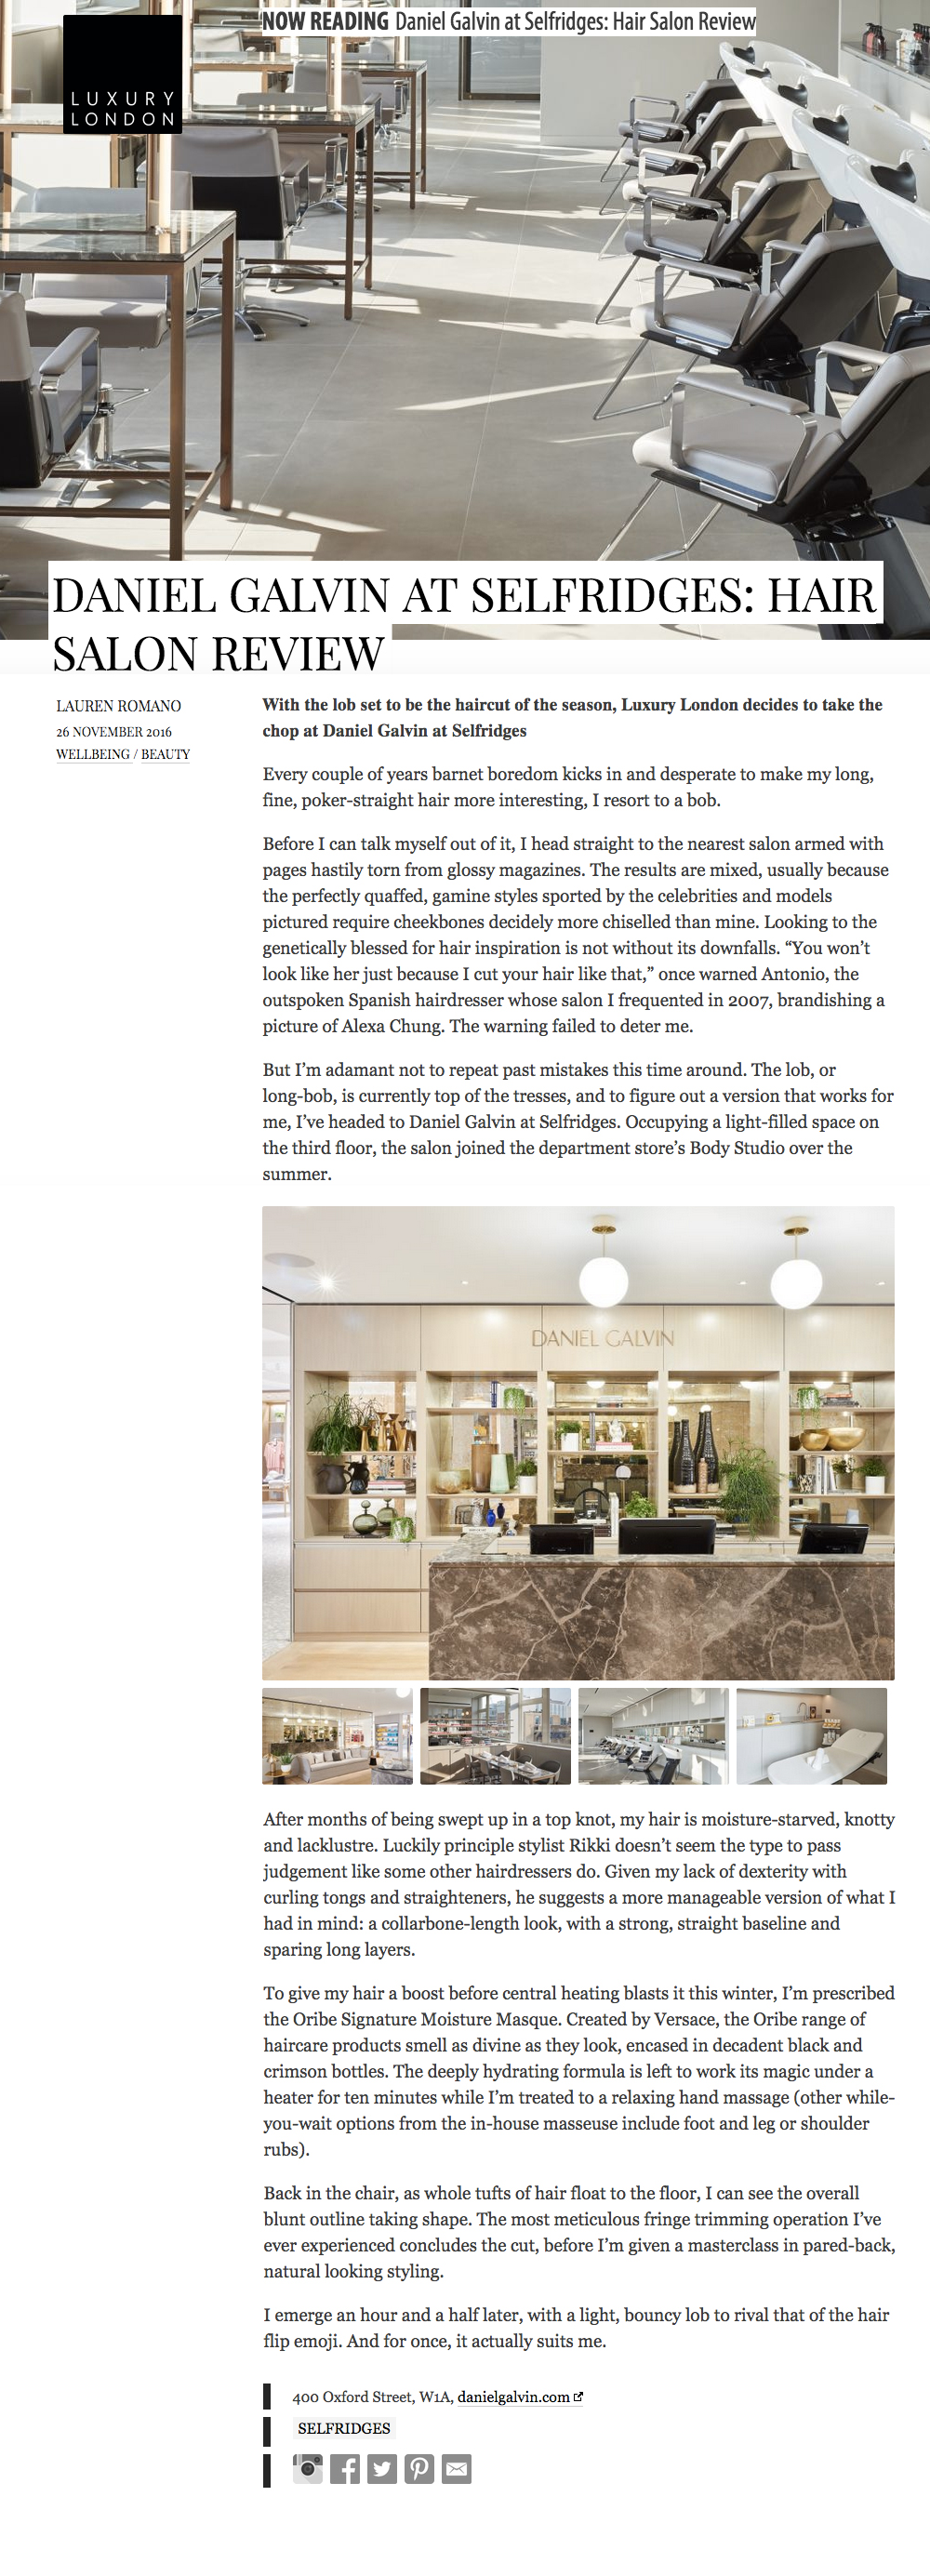 luxury london selfridges salon review